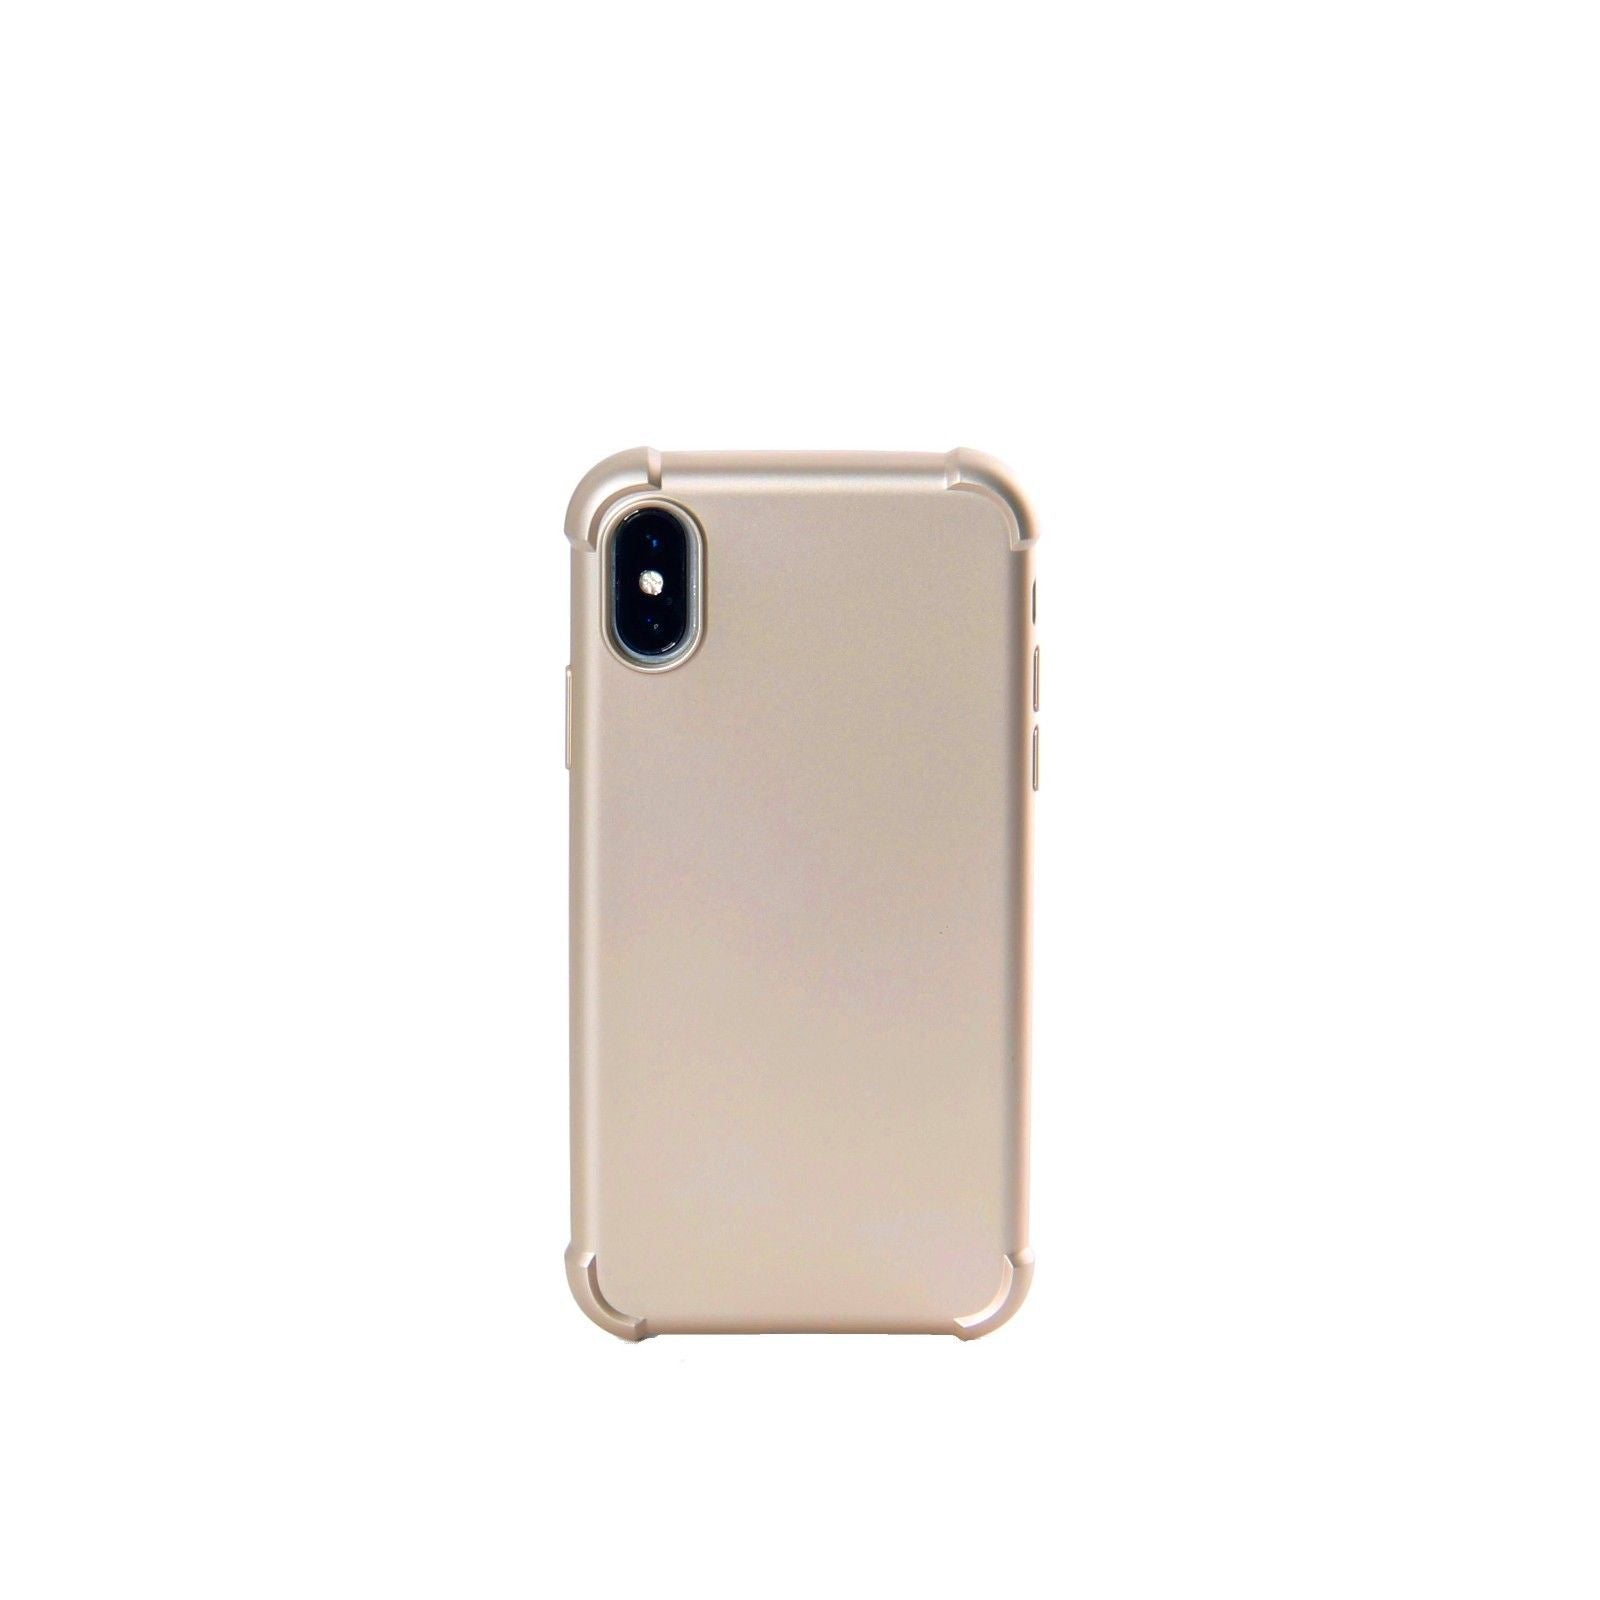 Authentic Iphone X Goospery Mercury Ijelly Metal Case Drop 7 Plus Sky Slide Bumper Red Two Pieces Front Shockproof Velvet Like Soft Tpu Jelly Caseofthedaycom